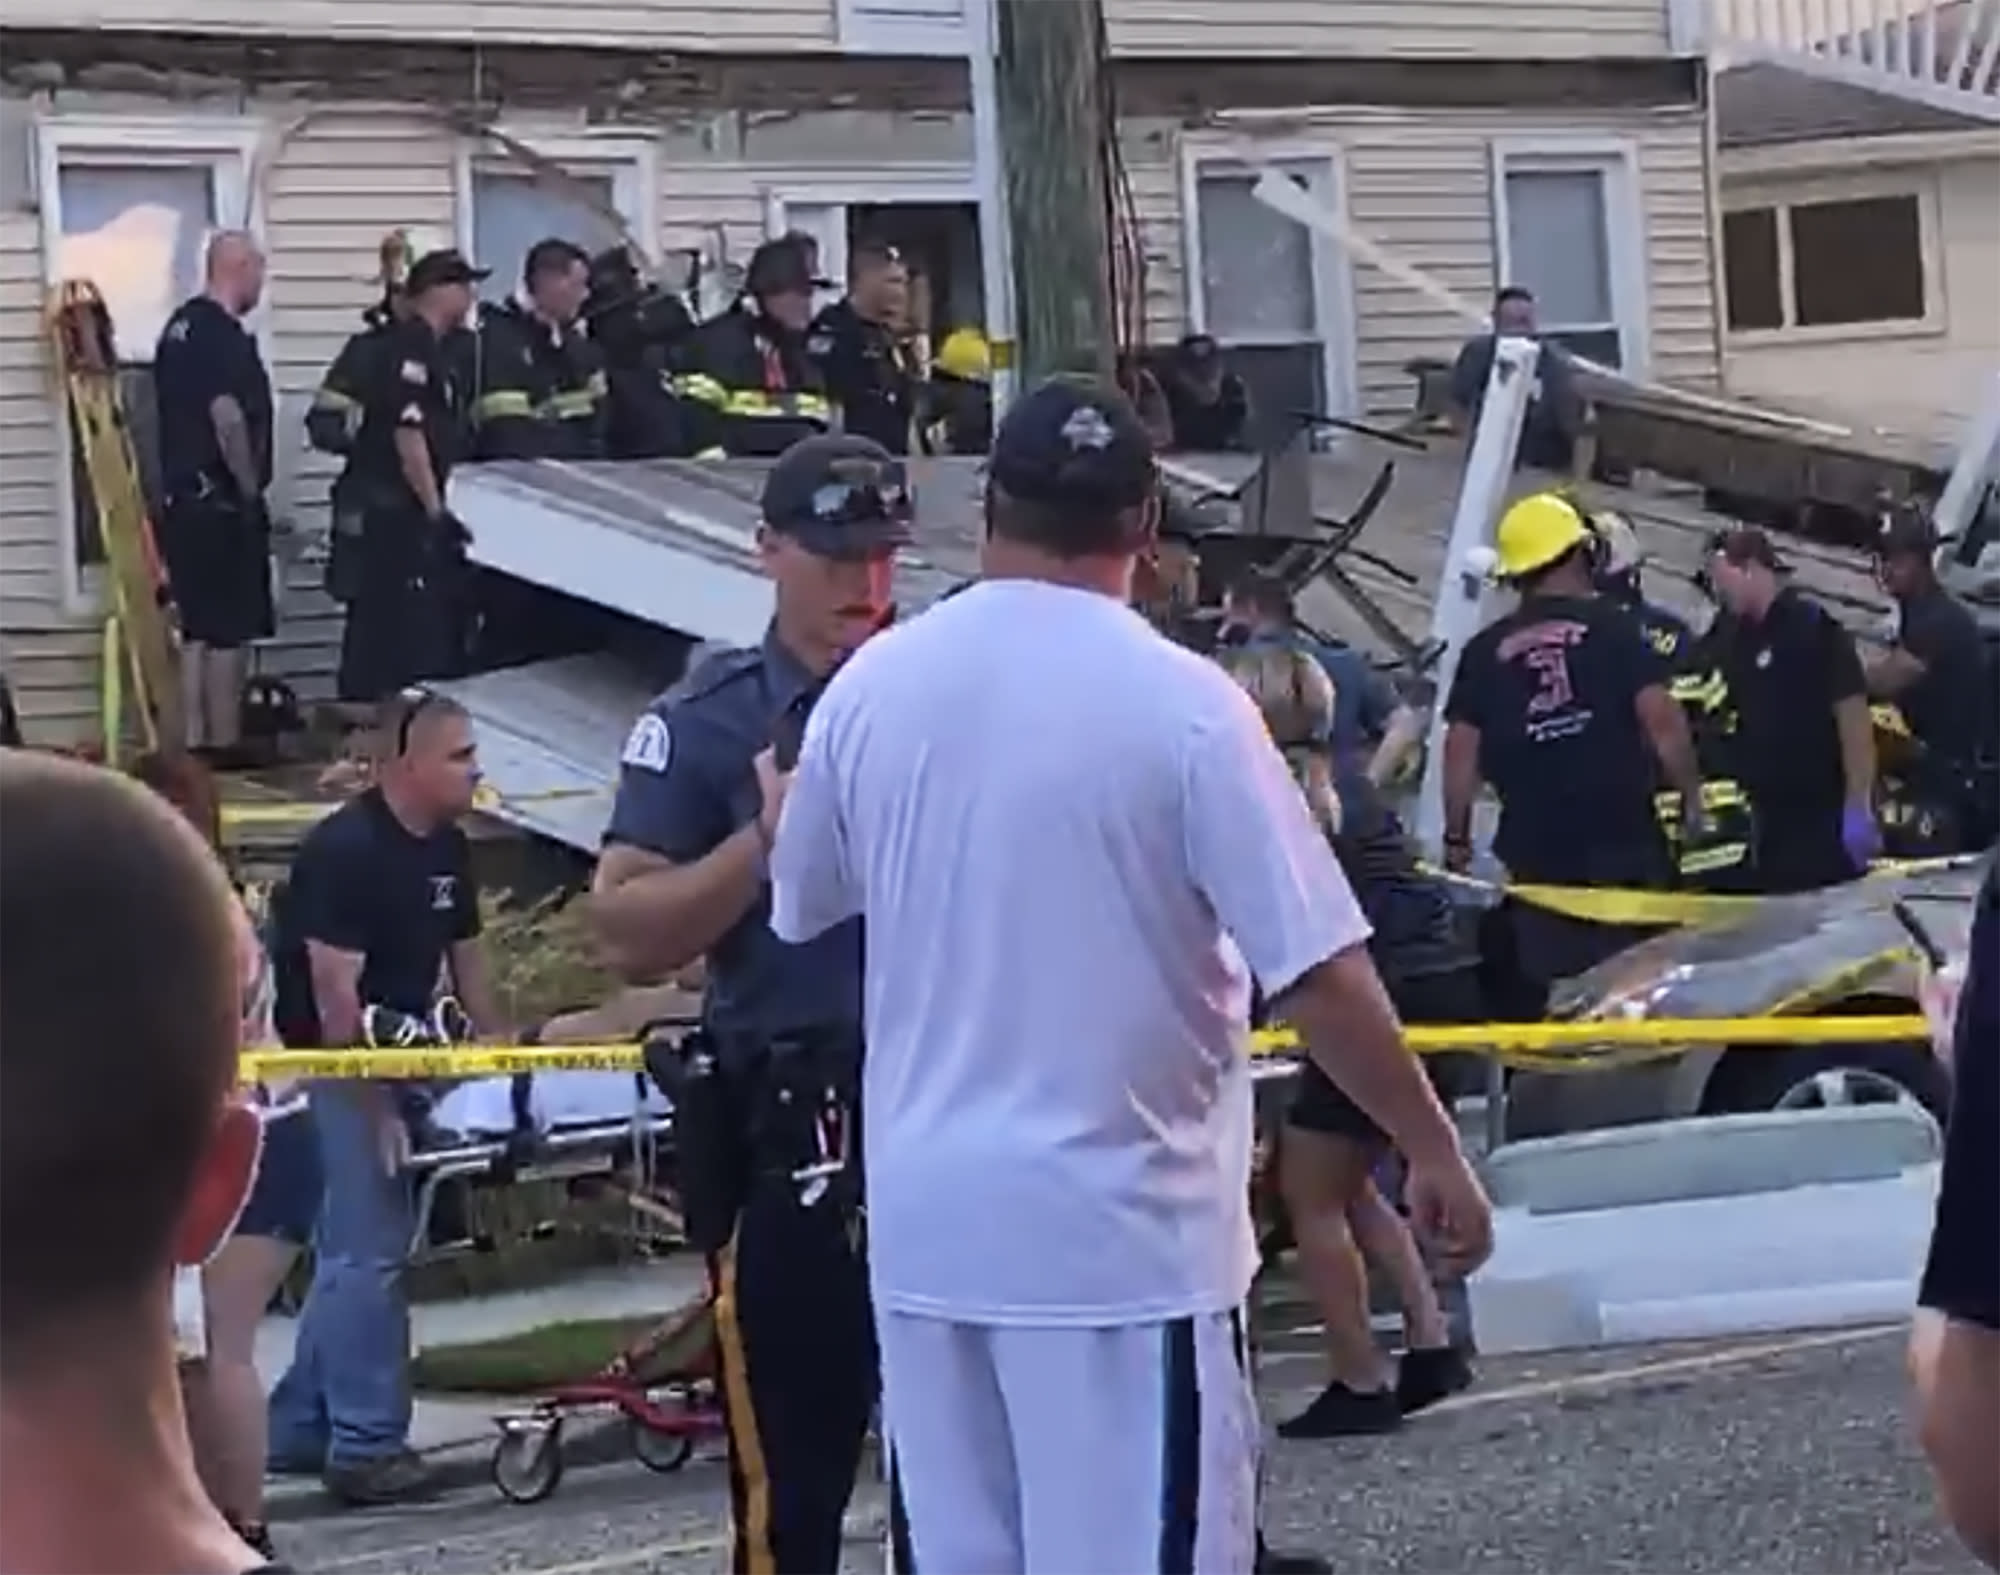 At least 22 people injured in deck collapse